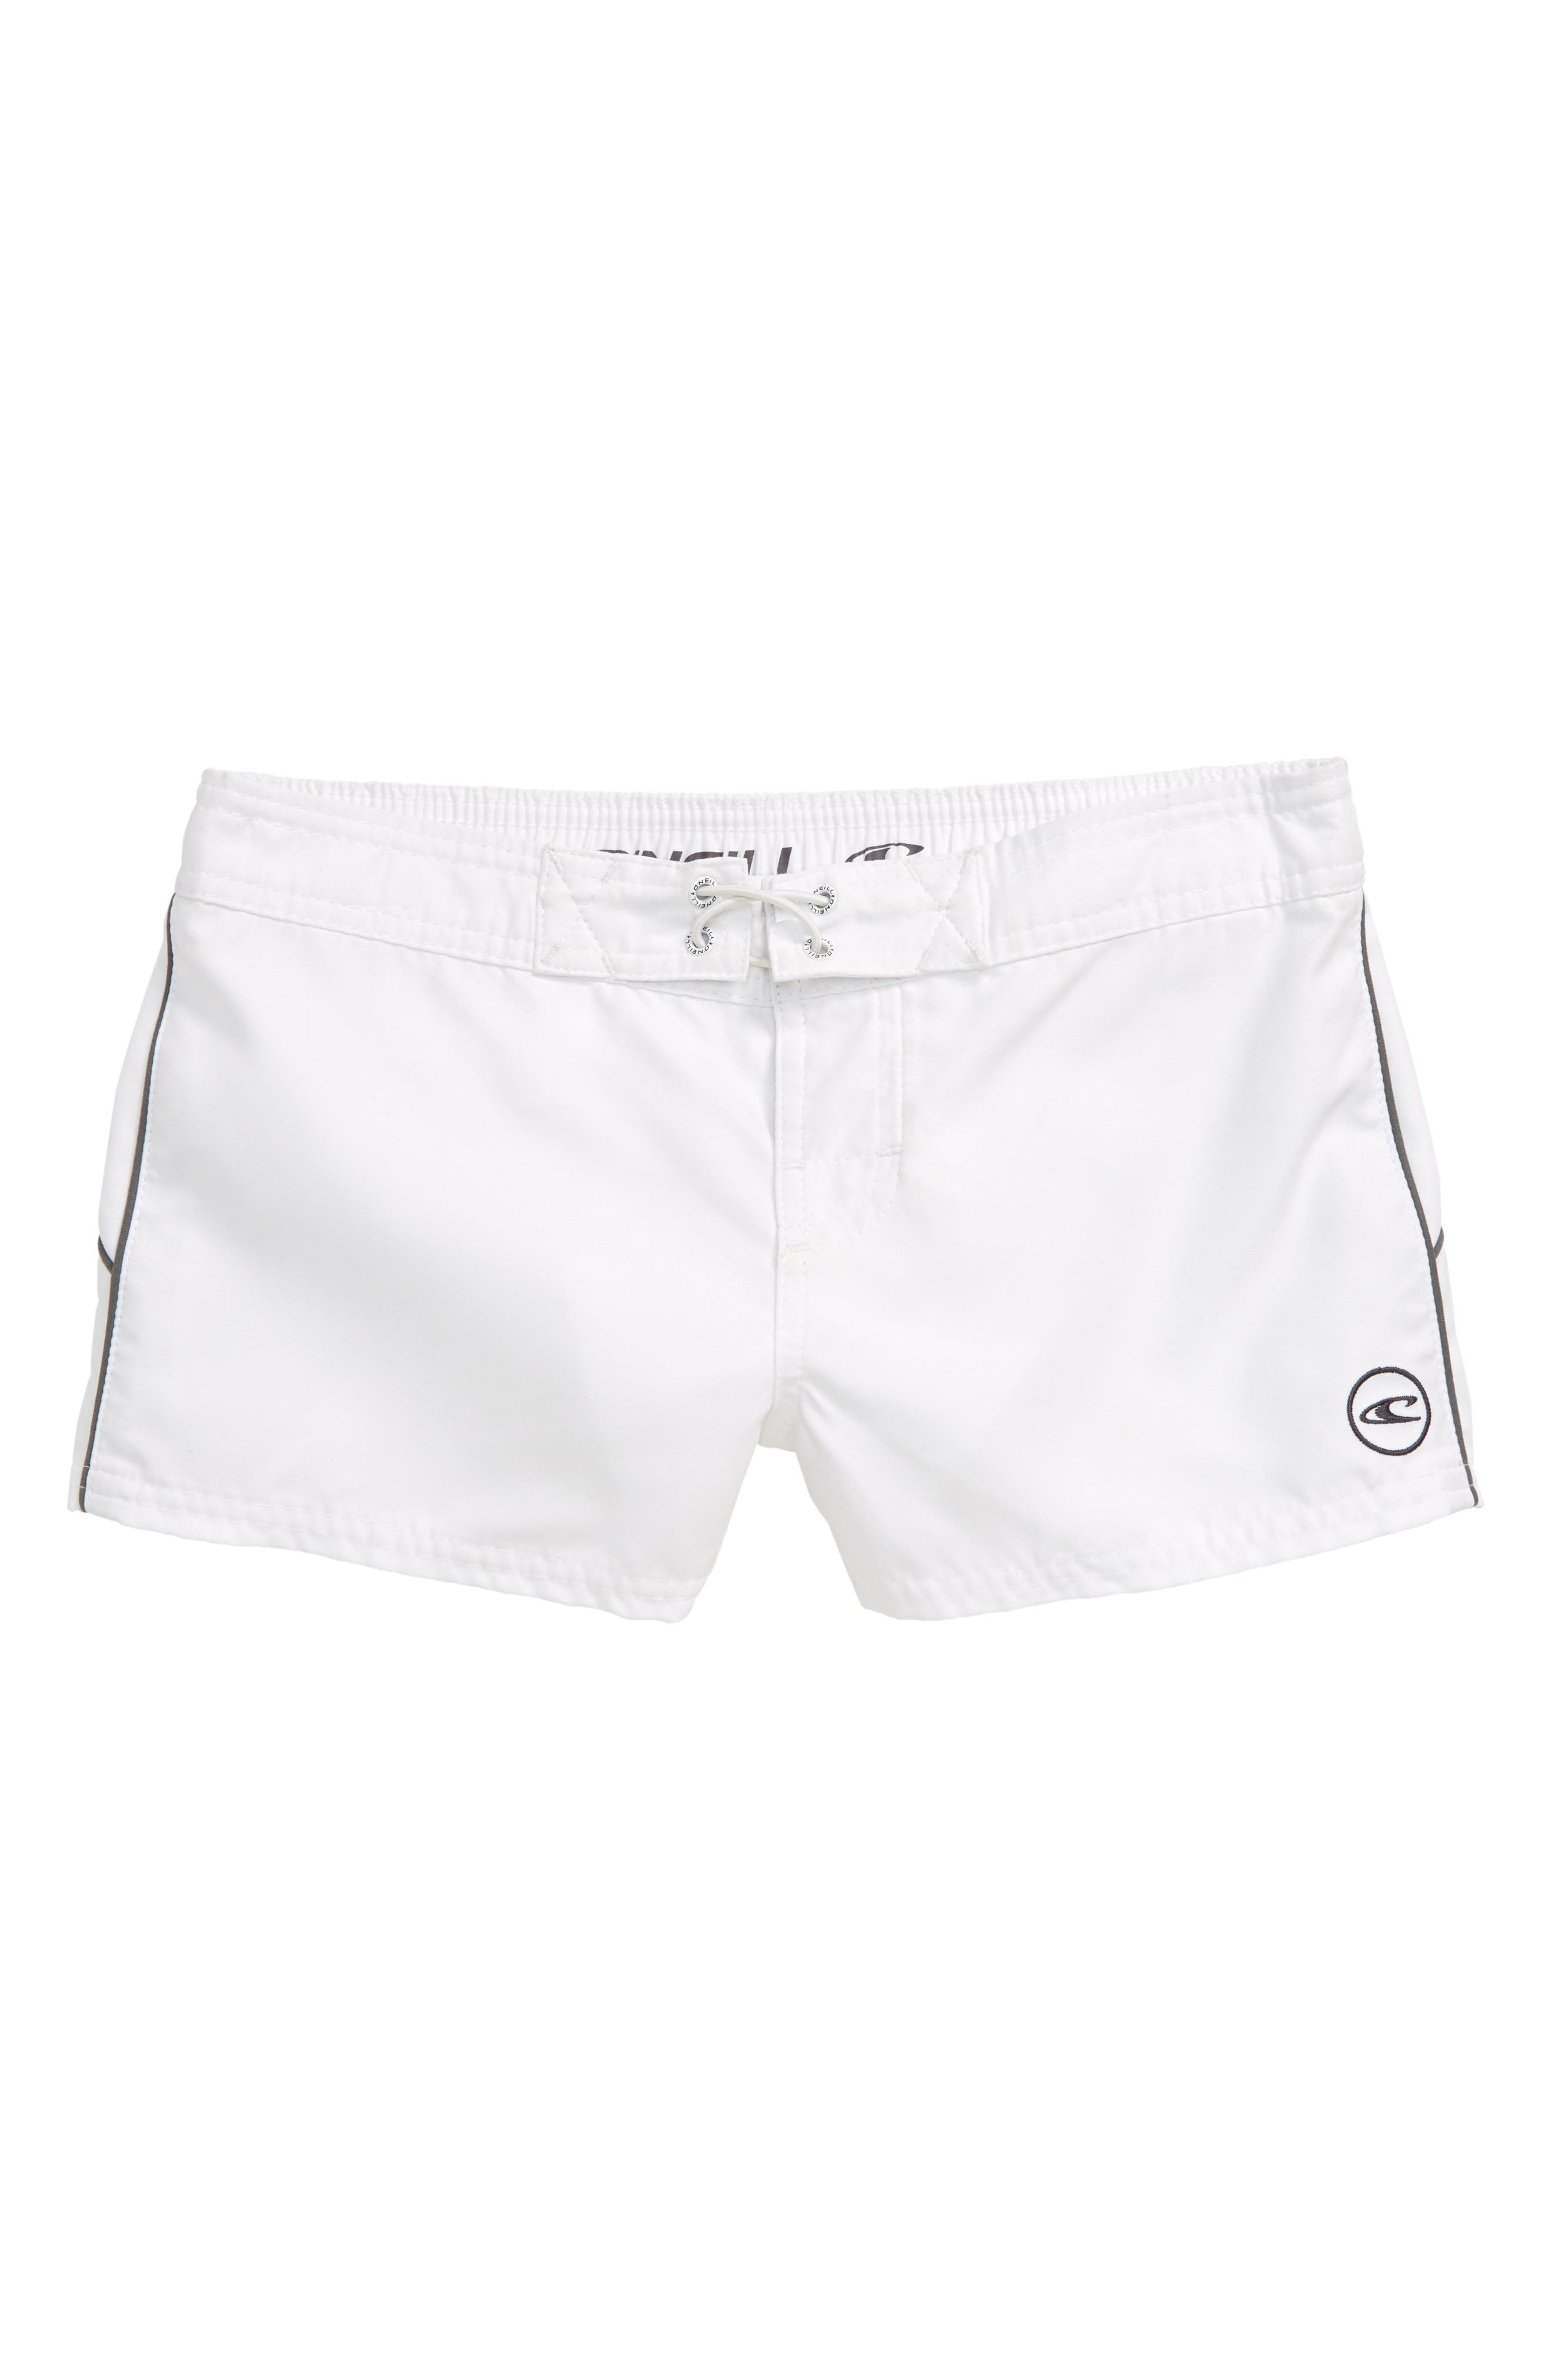 Girls ONeill Saltwater Solids Board Shorts Size 12  White